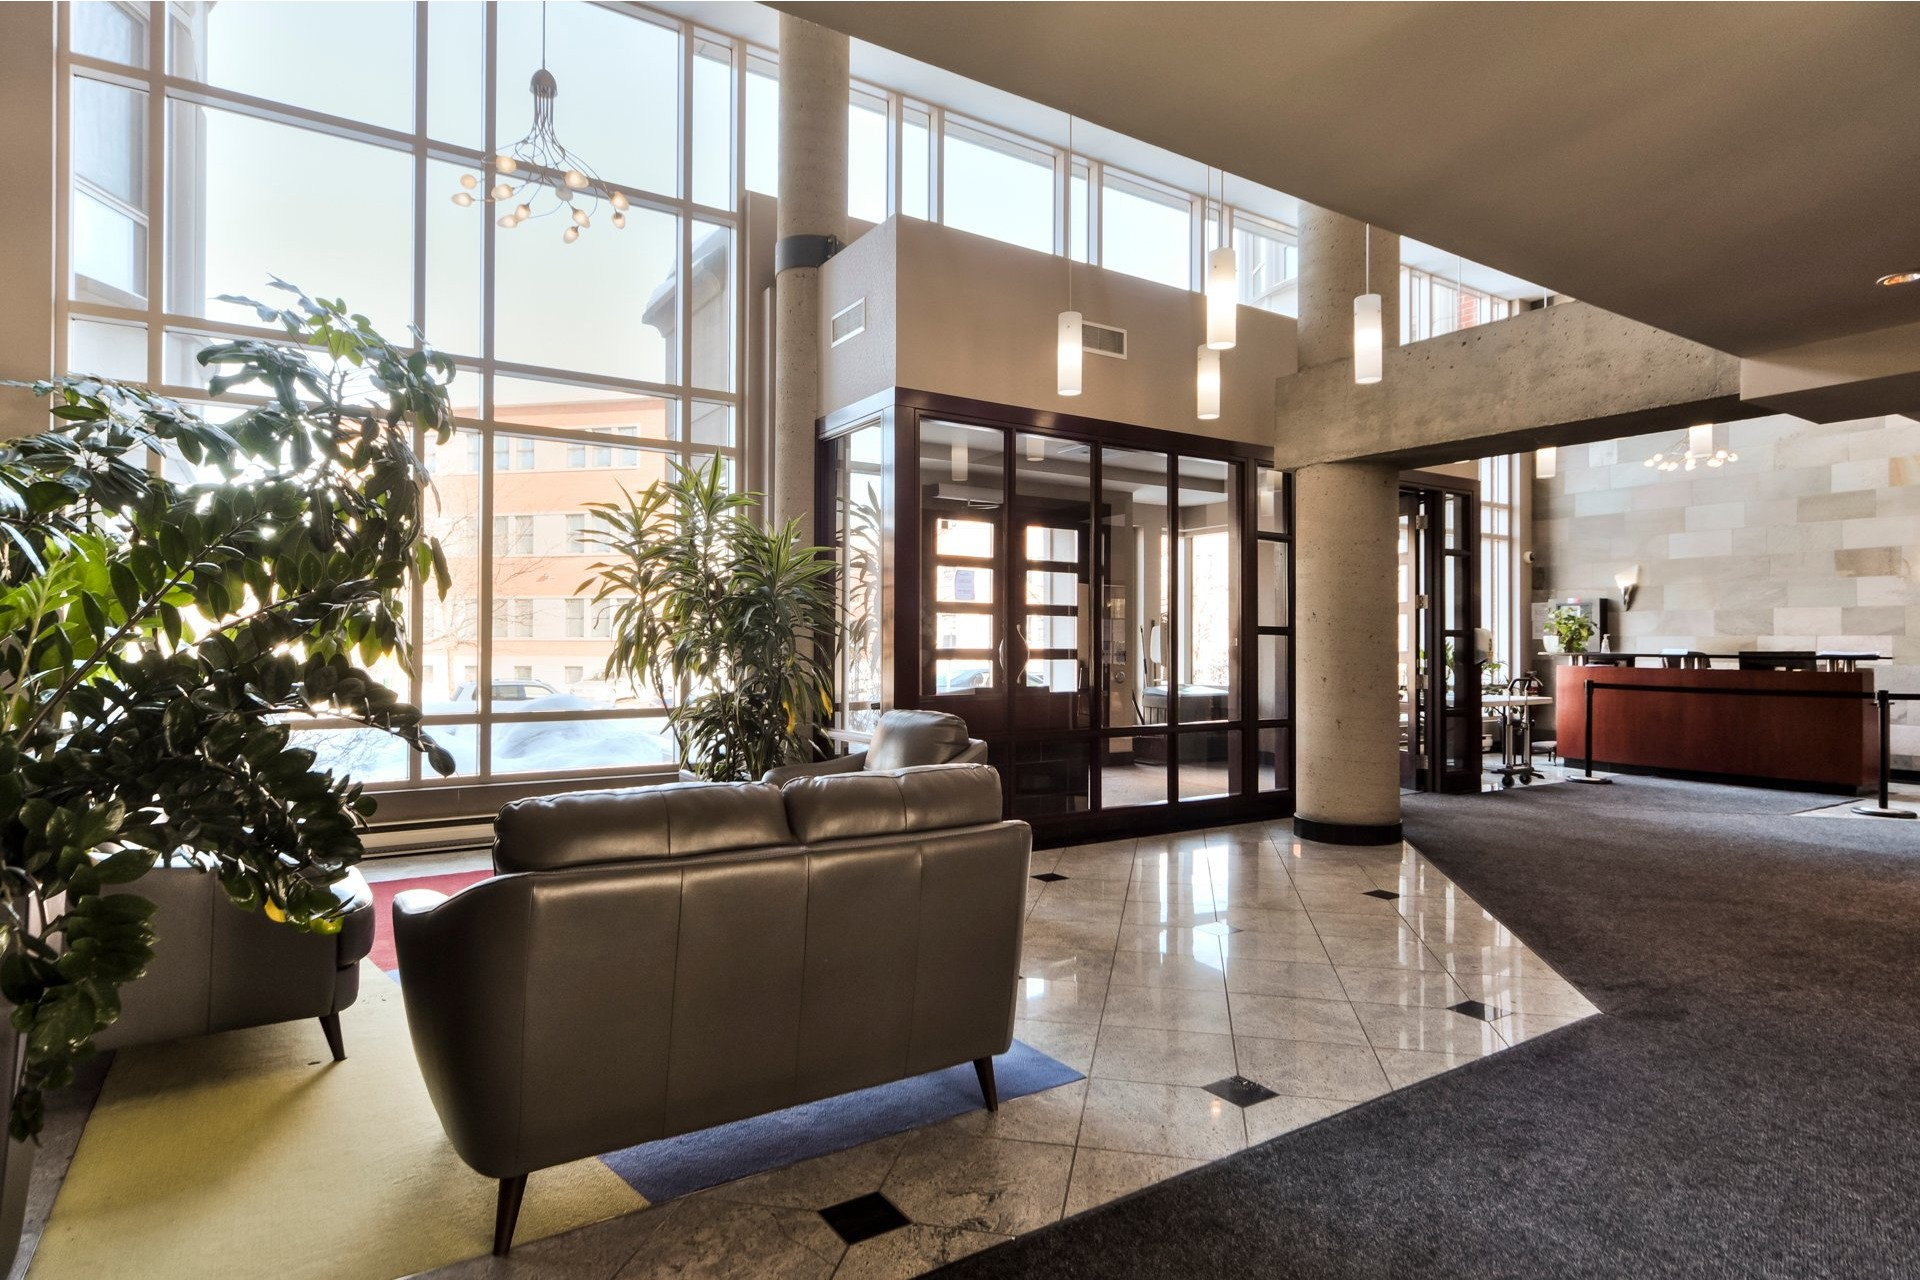 image 2 - Apartment For sale Mont-Royal - 8 rooms